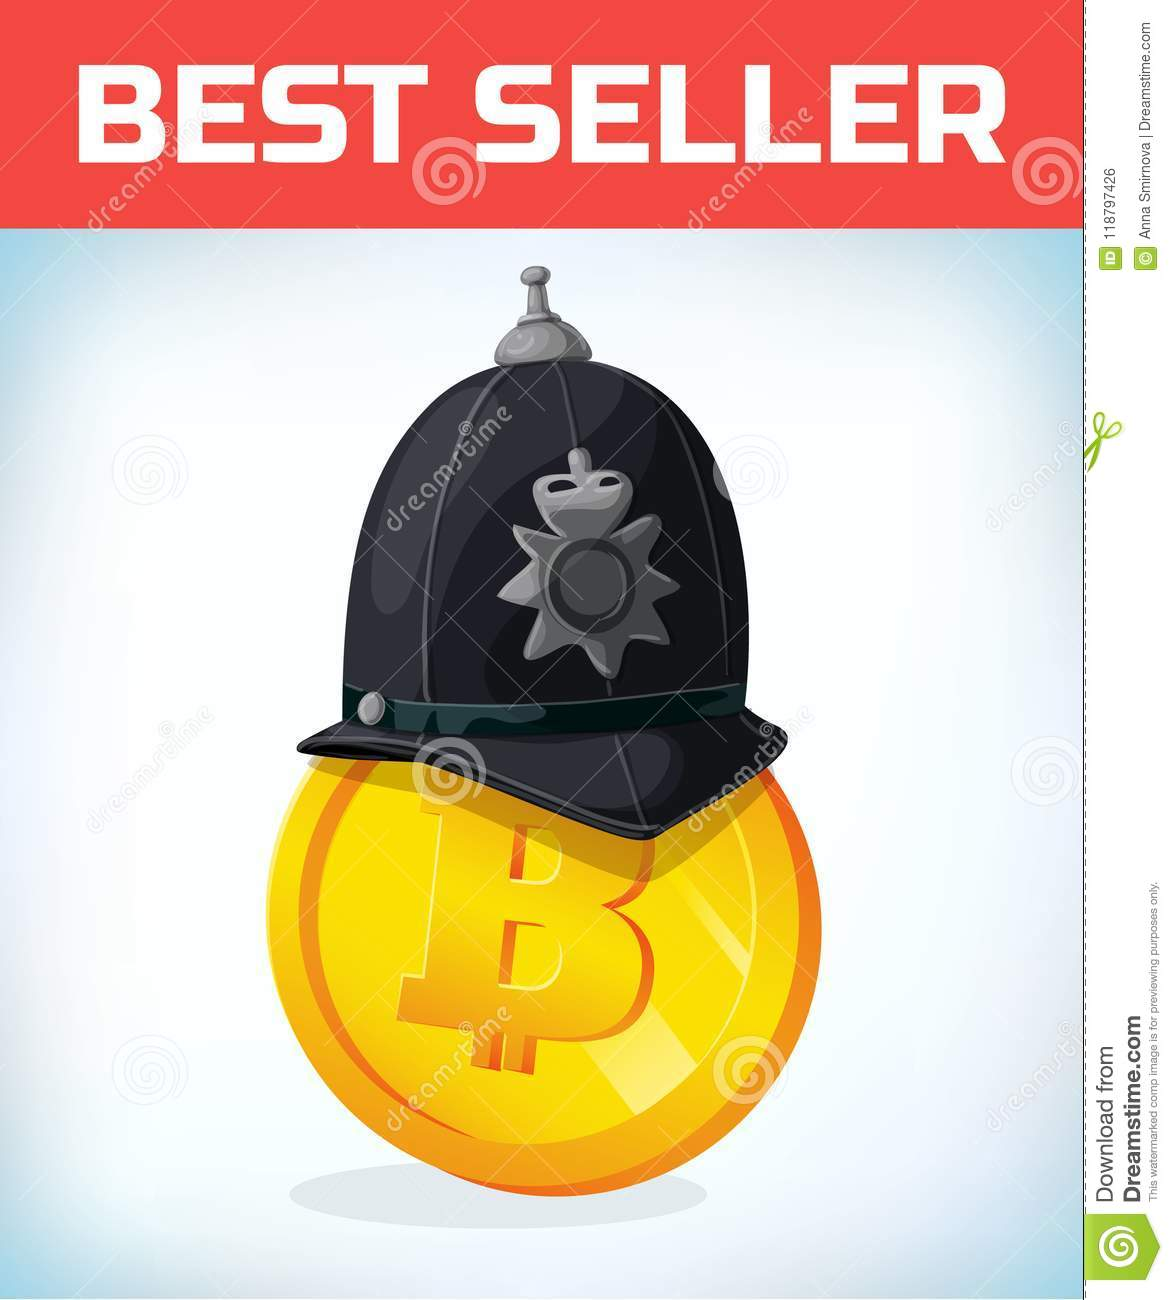 Bitcoin In London Policeman Helmet Bitcoin Digital Currency